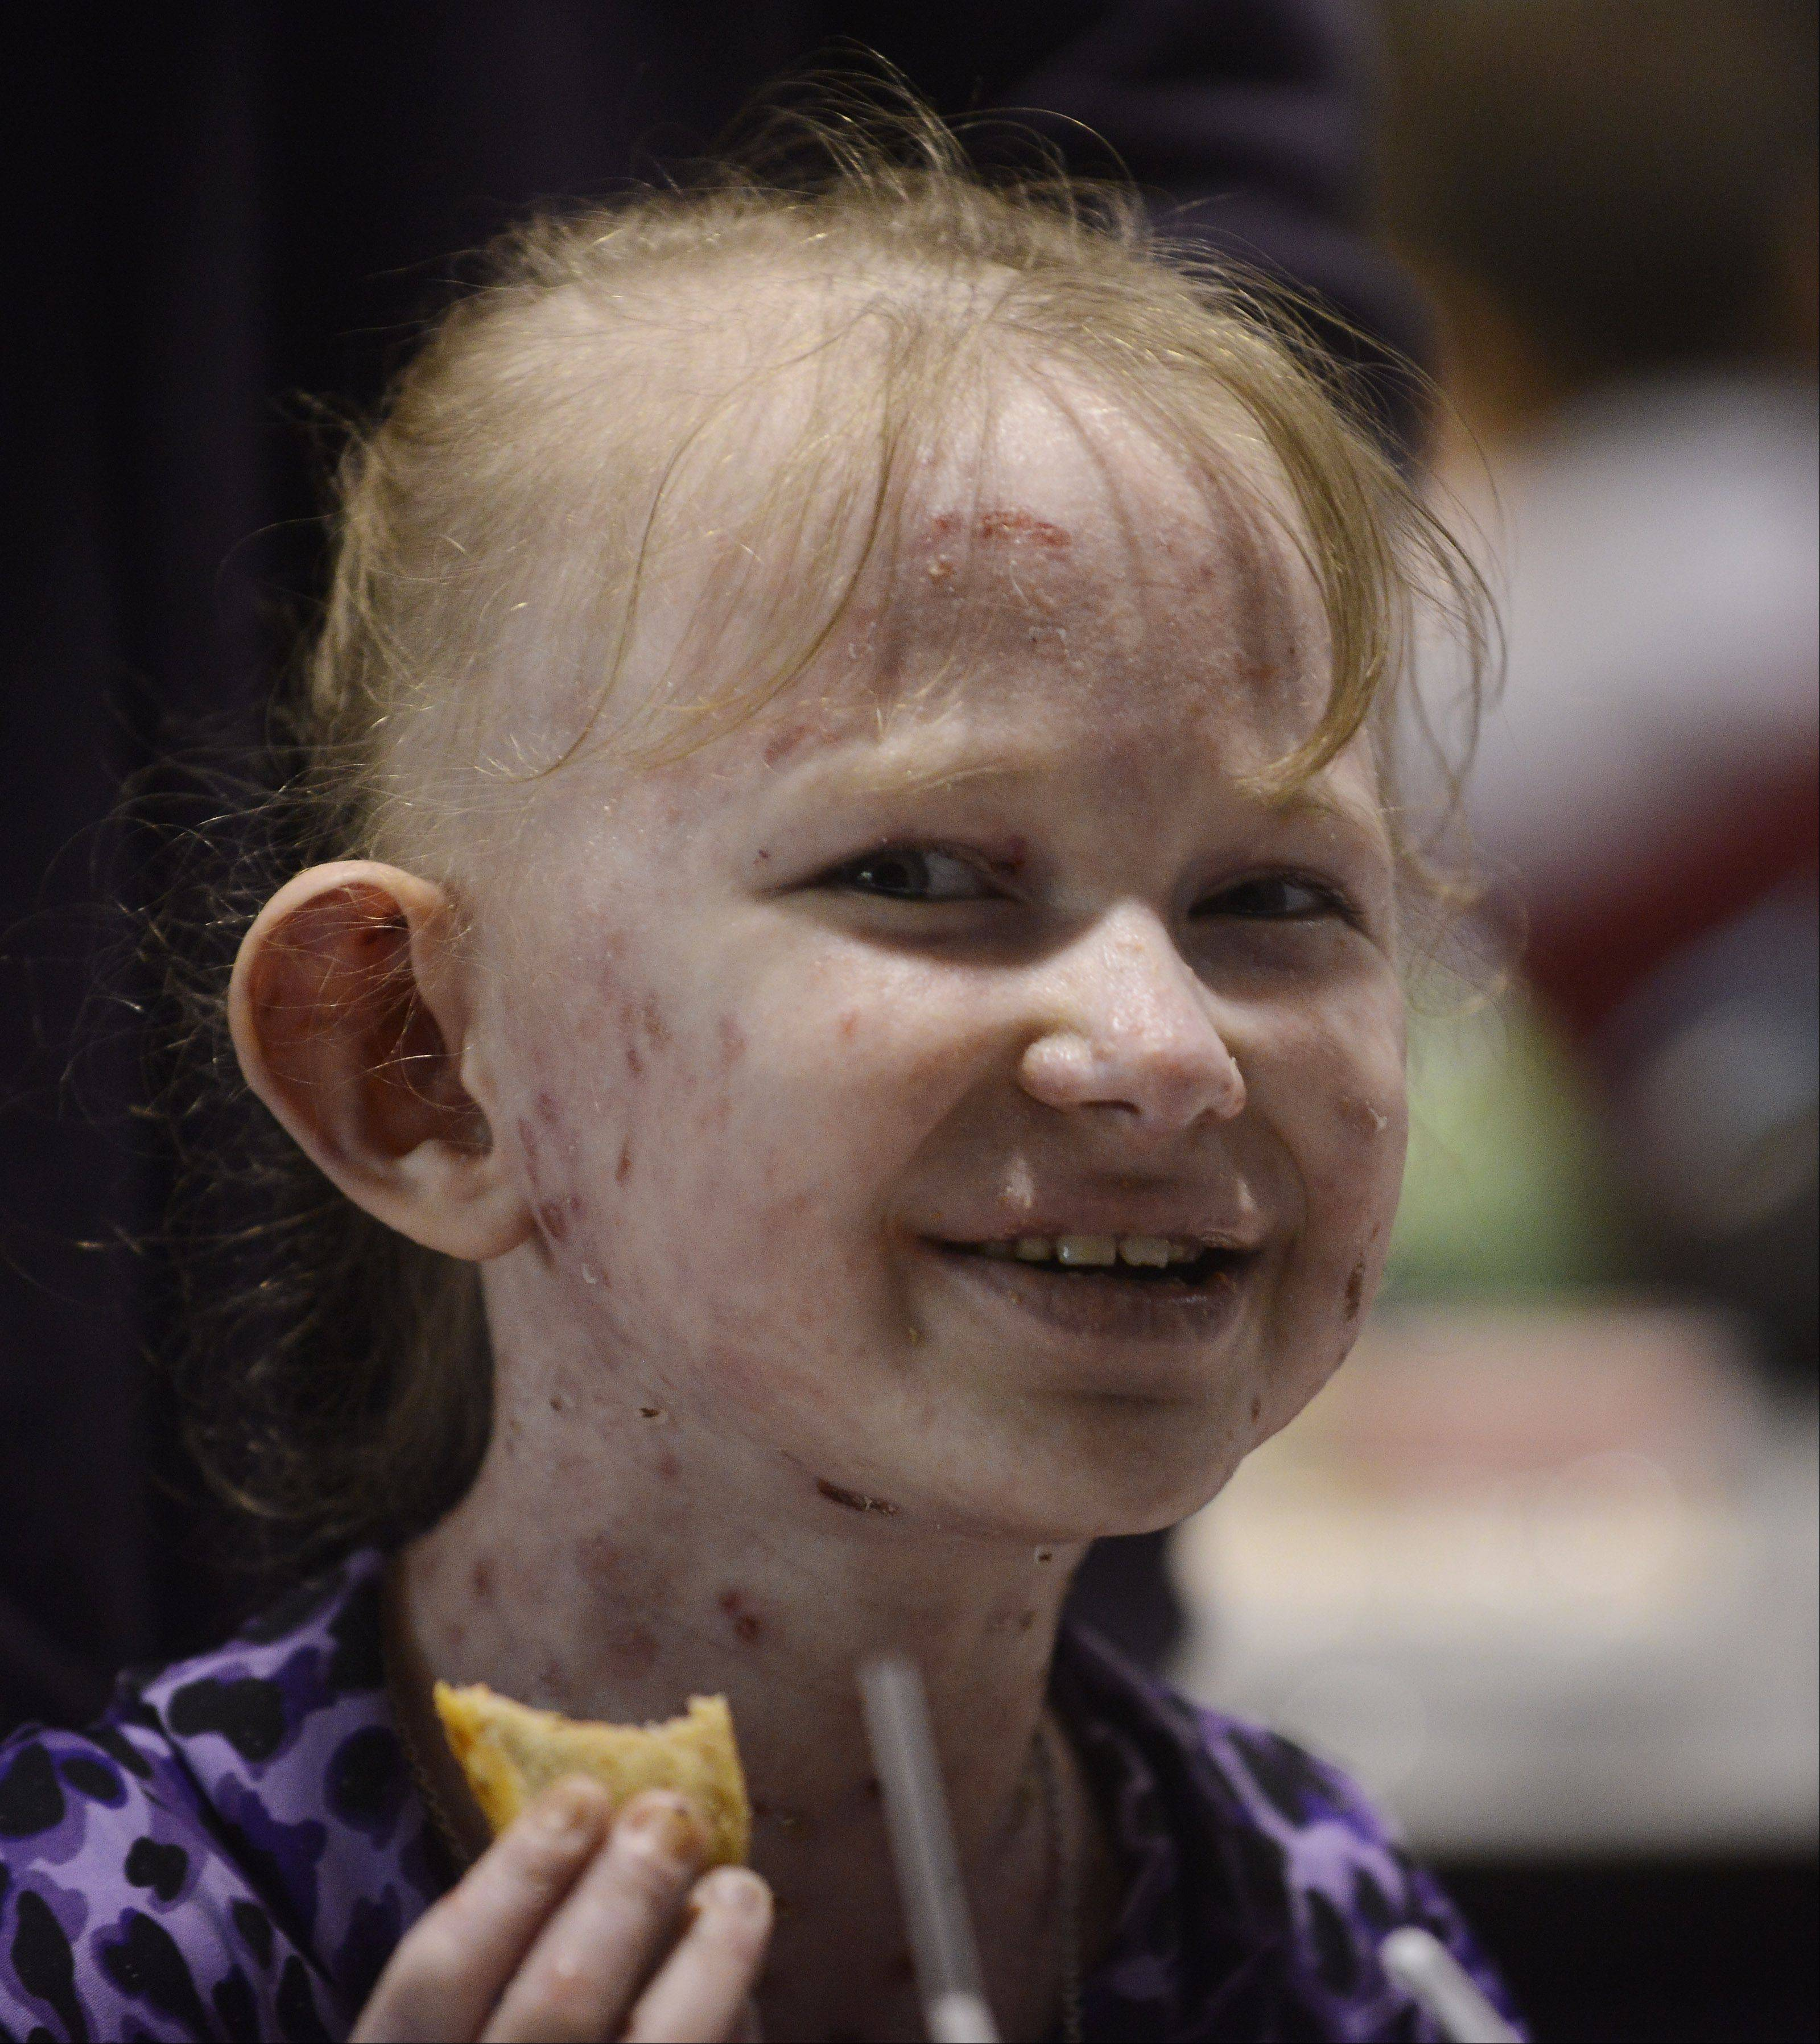 Blue eyes and a sweet smile dominate the face of Caroline Provost, who doesn't let painful blisters from a rare skin disorder keep her from enjoying lunch at Kimball Hill School in Rolling Meadows.